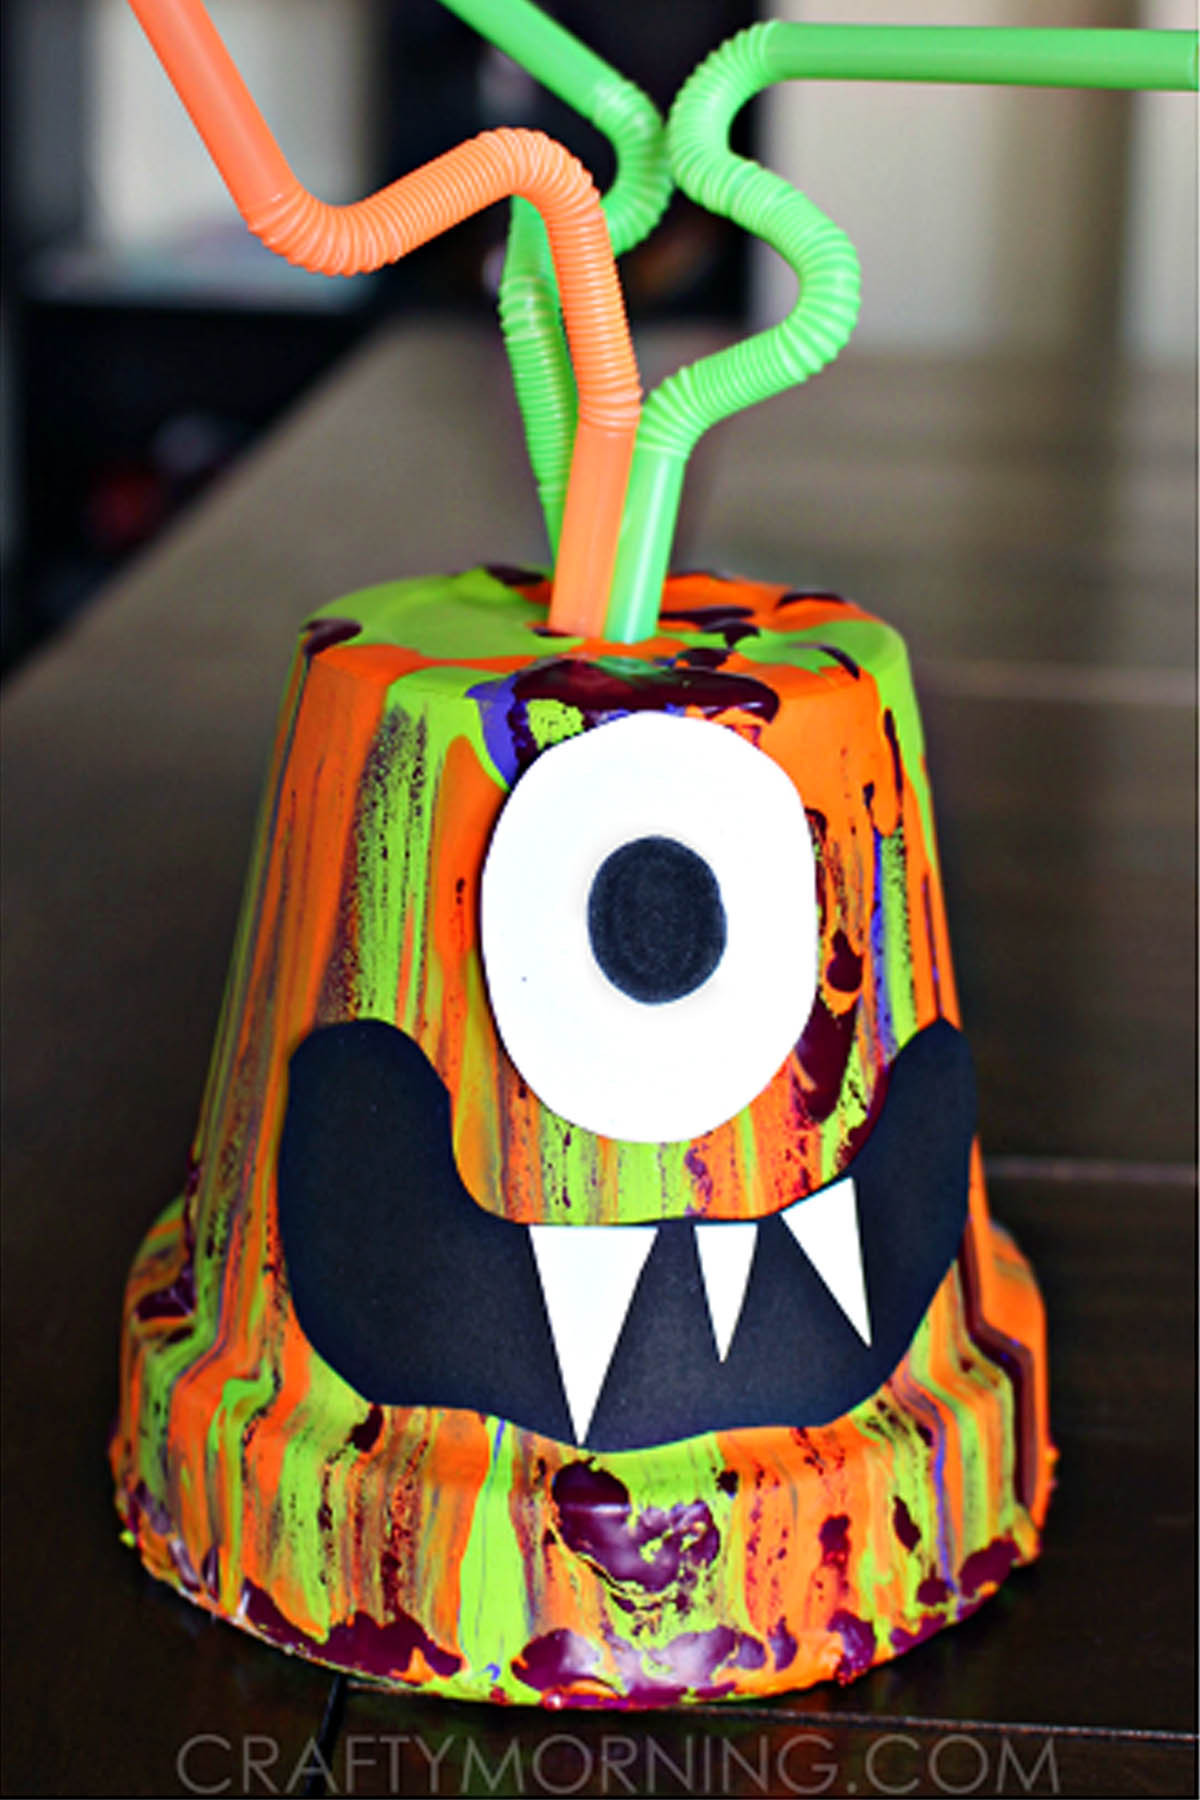 Best ideas about Crafts For Kids . Save or Pin 20 Easy Halloween Crafts for Kids Fun Halloween Craft Now.